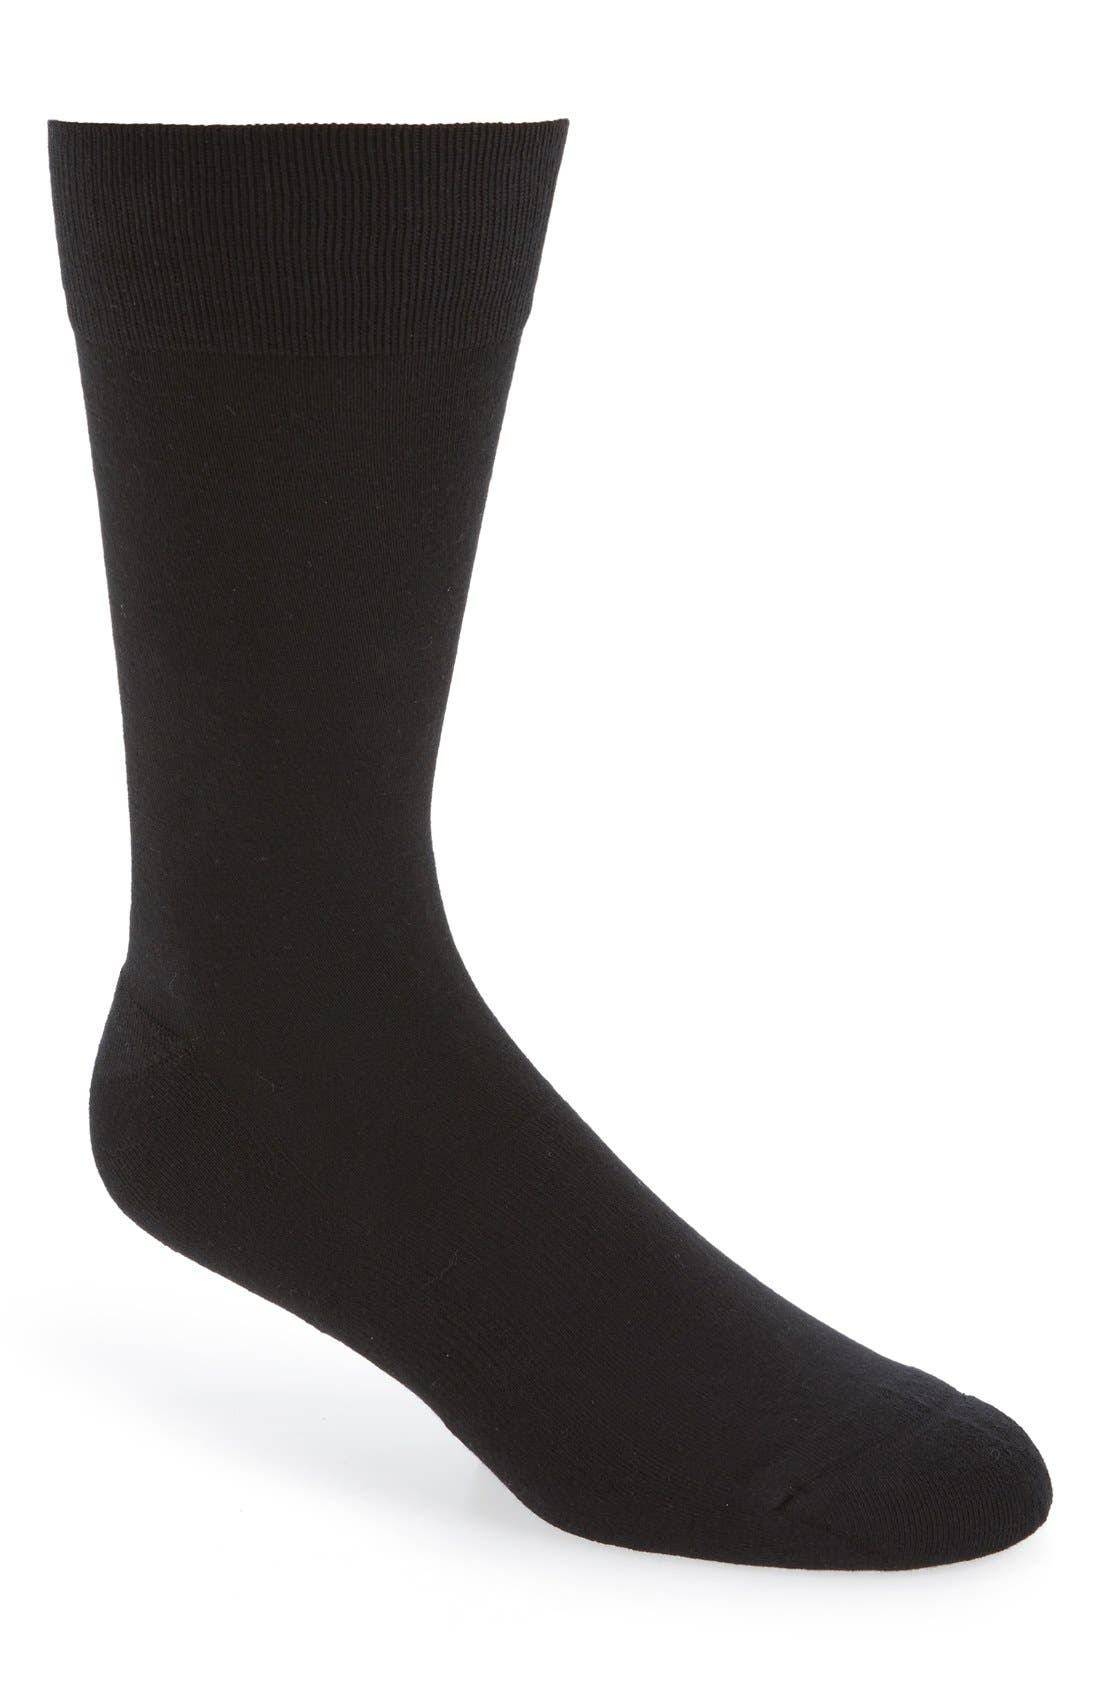 Cushion Foot Arch Support Socks,                         Main,                         color, BLACK